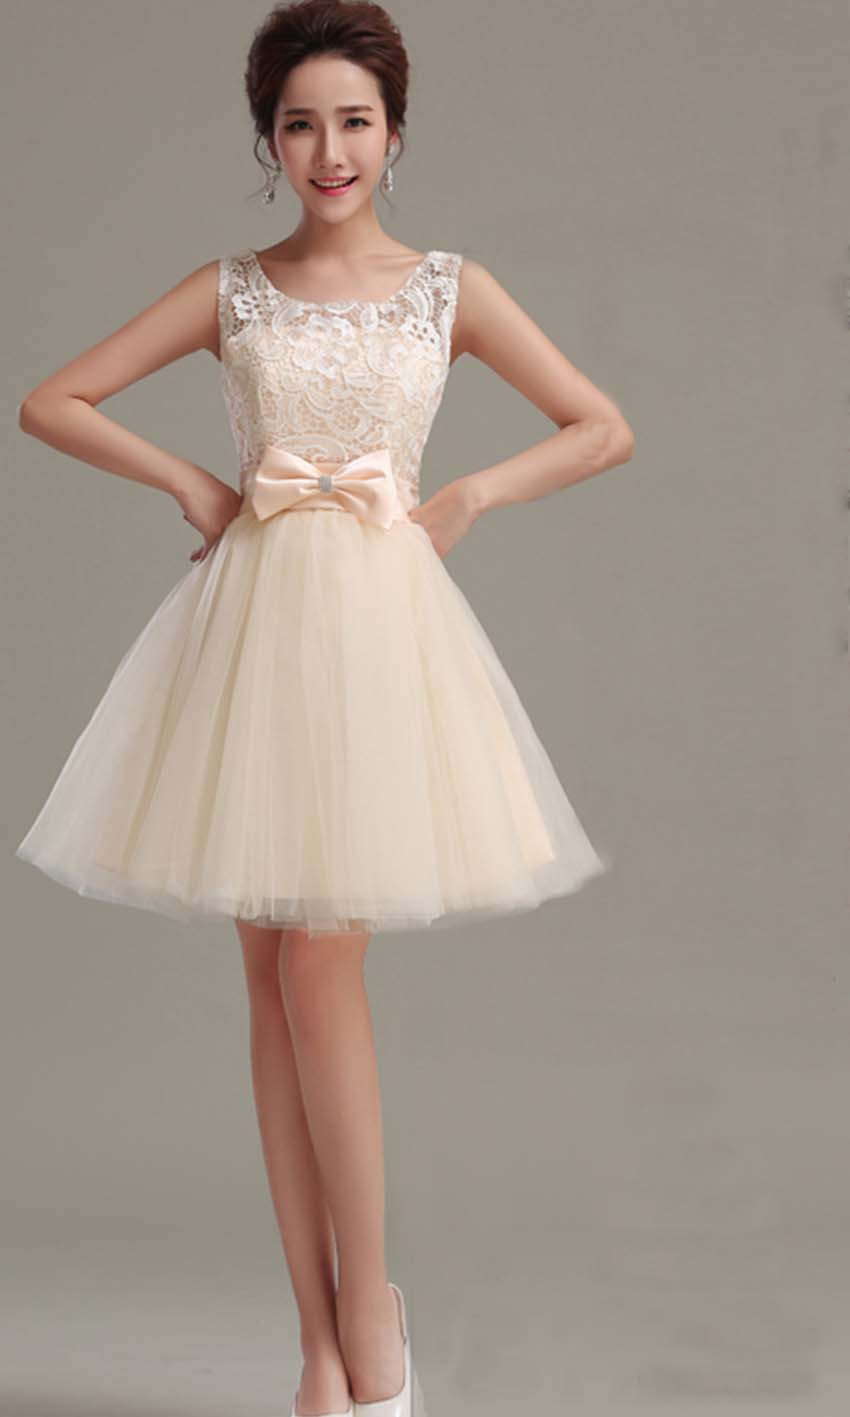 Cute beige retro bow knot short prom gown ksp348 ksp348 for Beige short wedding dresses